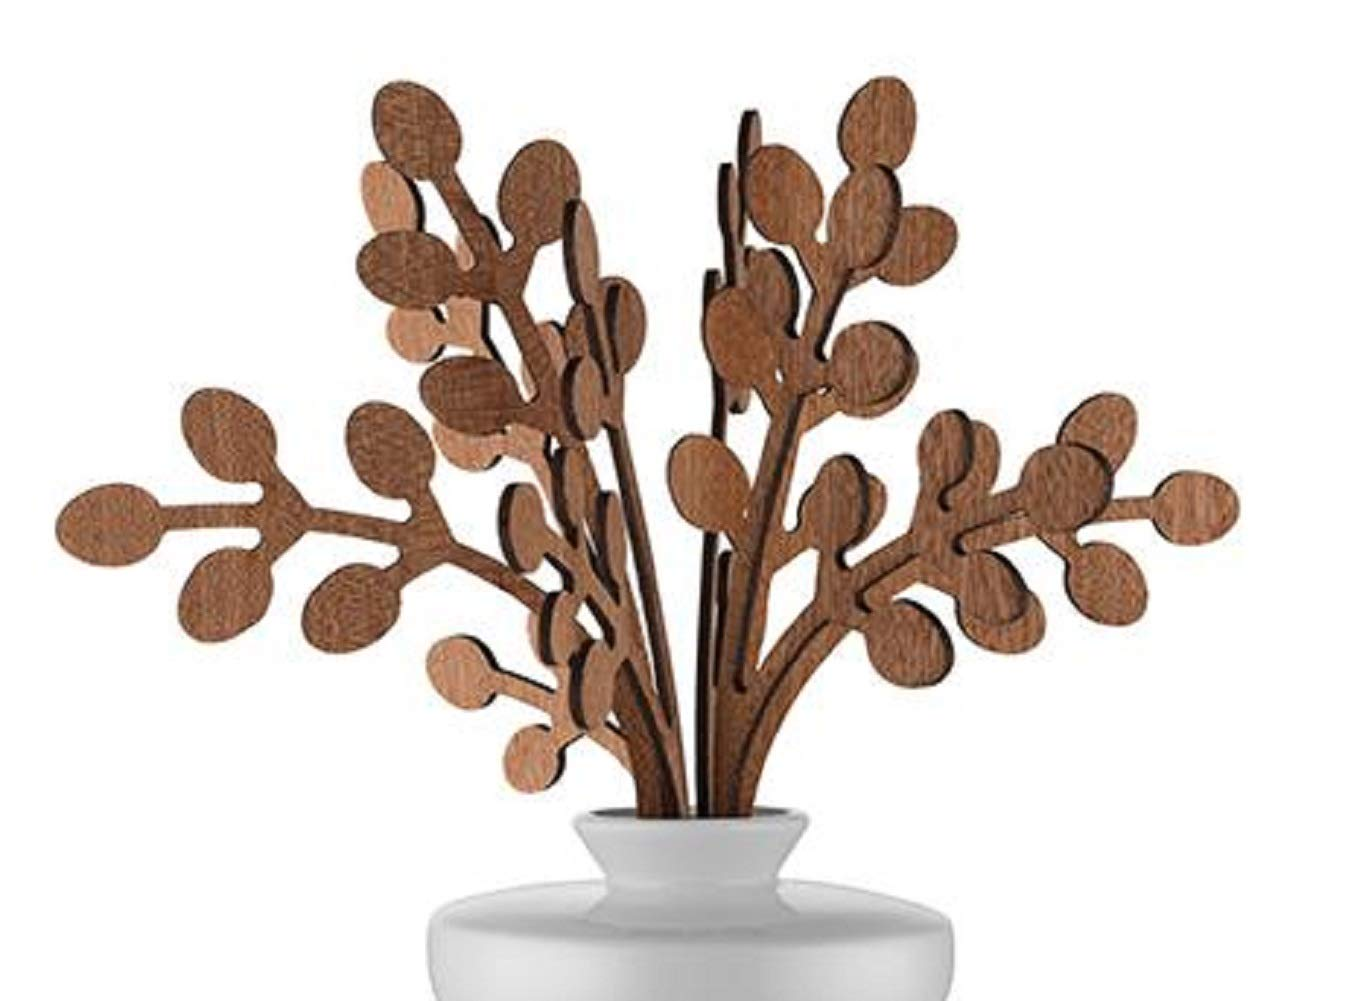 Alessi The Five Seasons Brrr Replacement Diffuser Leaves, Mahogany Wood, by Marcel Wanders by Alessi (Image #1)